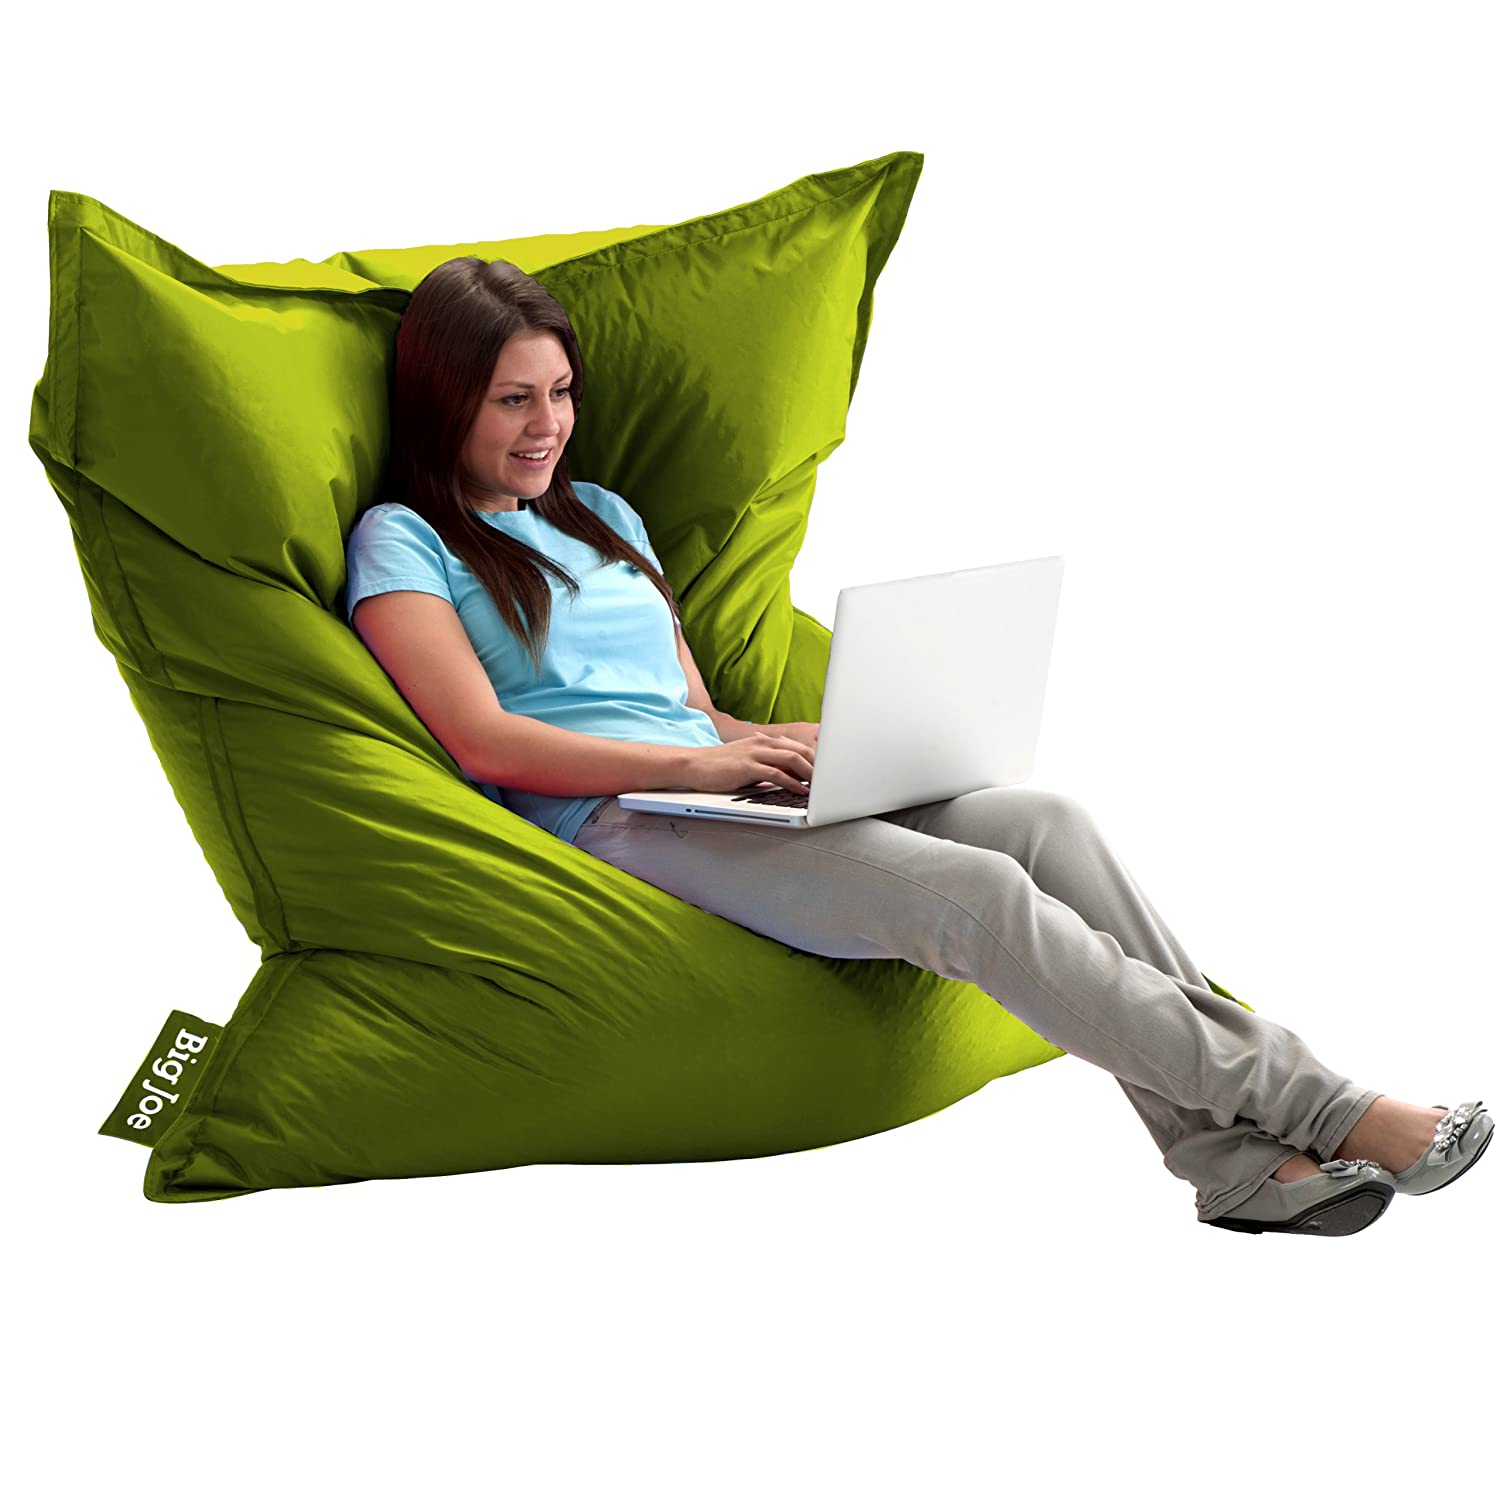 Comfort Research The Original Big Joe with Smart Max Fabric, Lime-anade